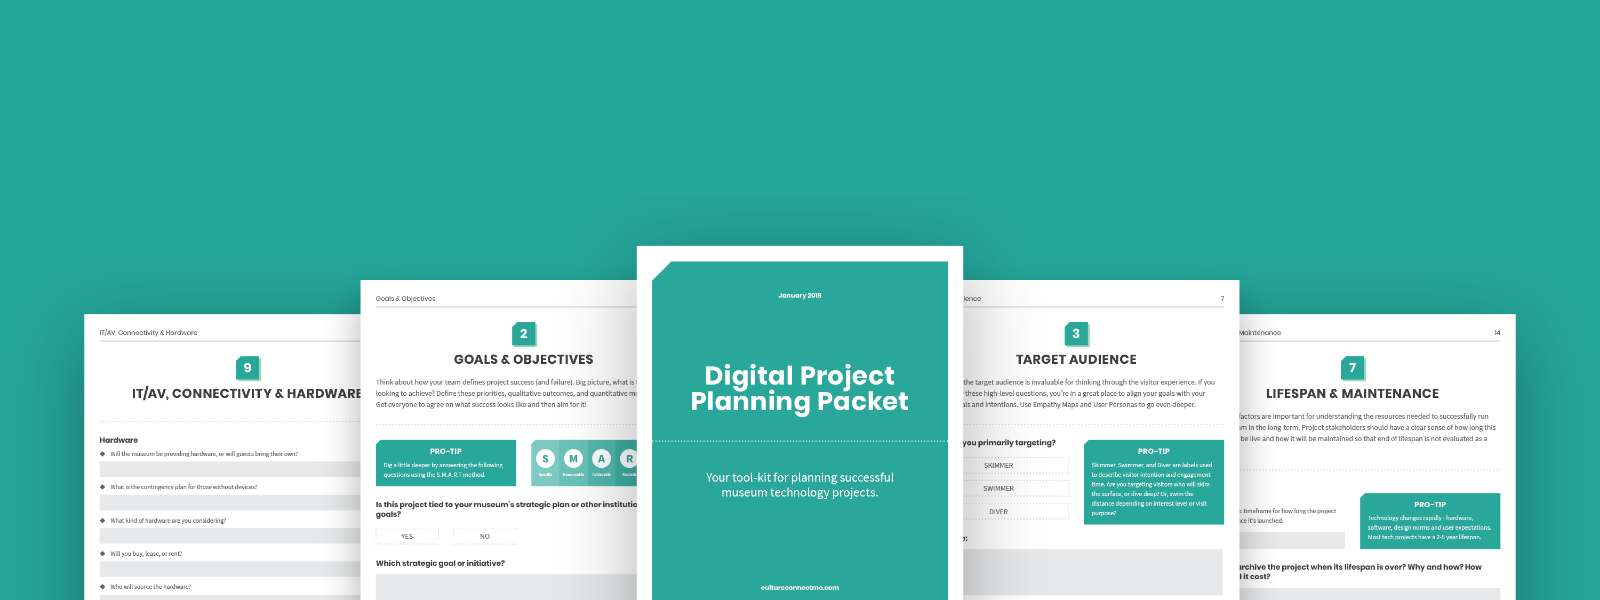 Digital Project Planning Packet